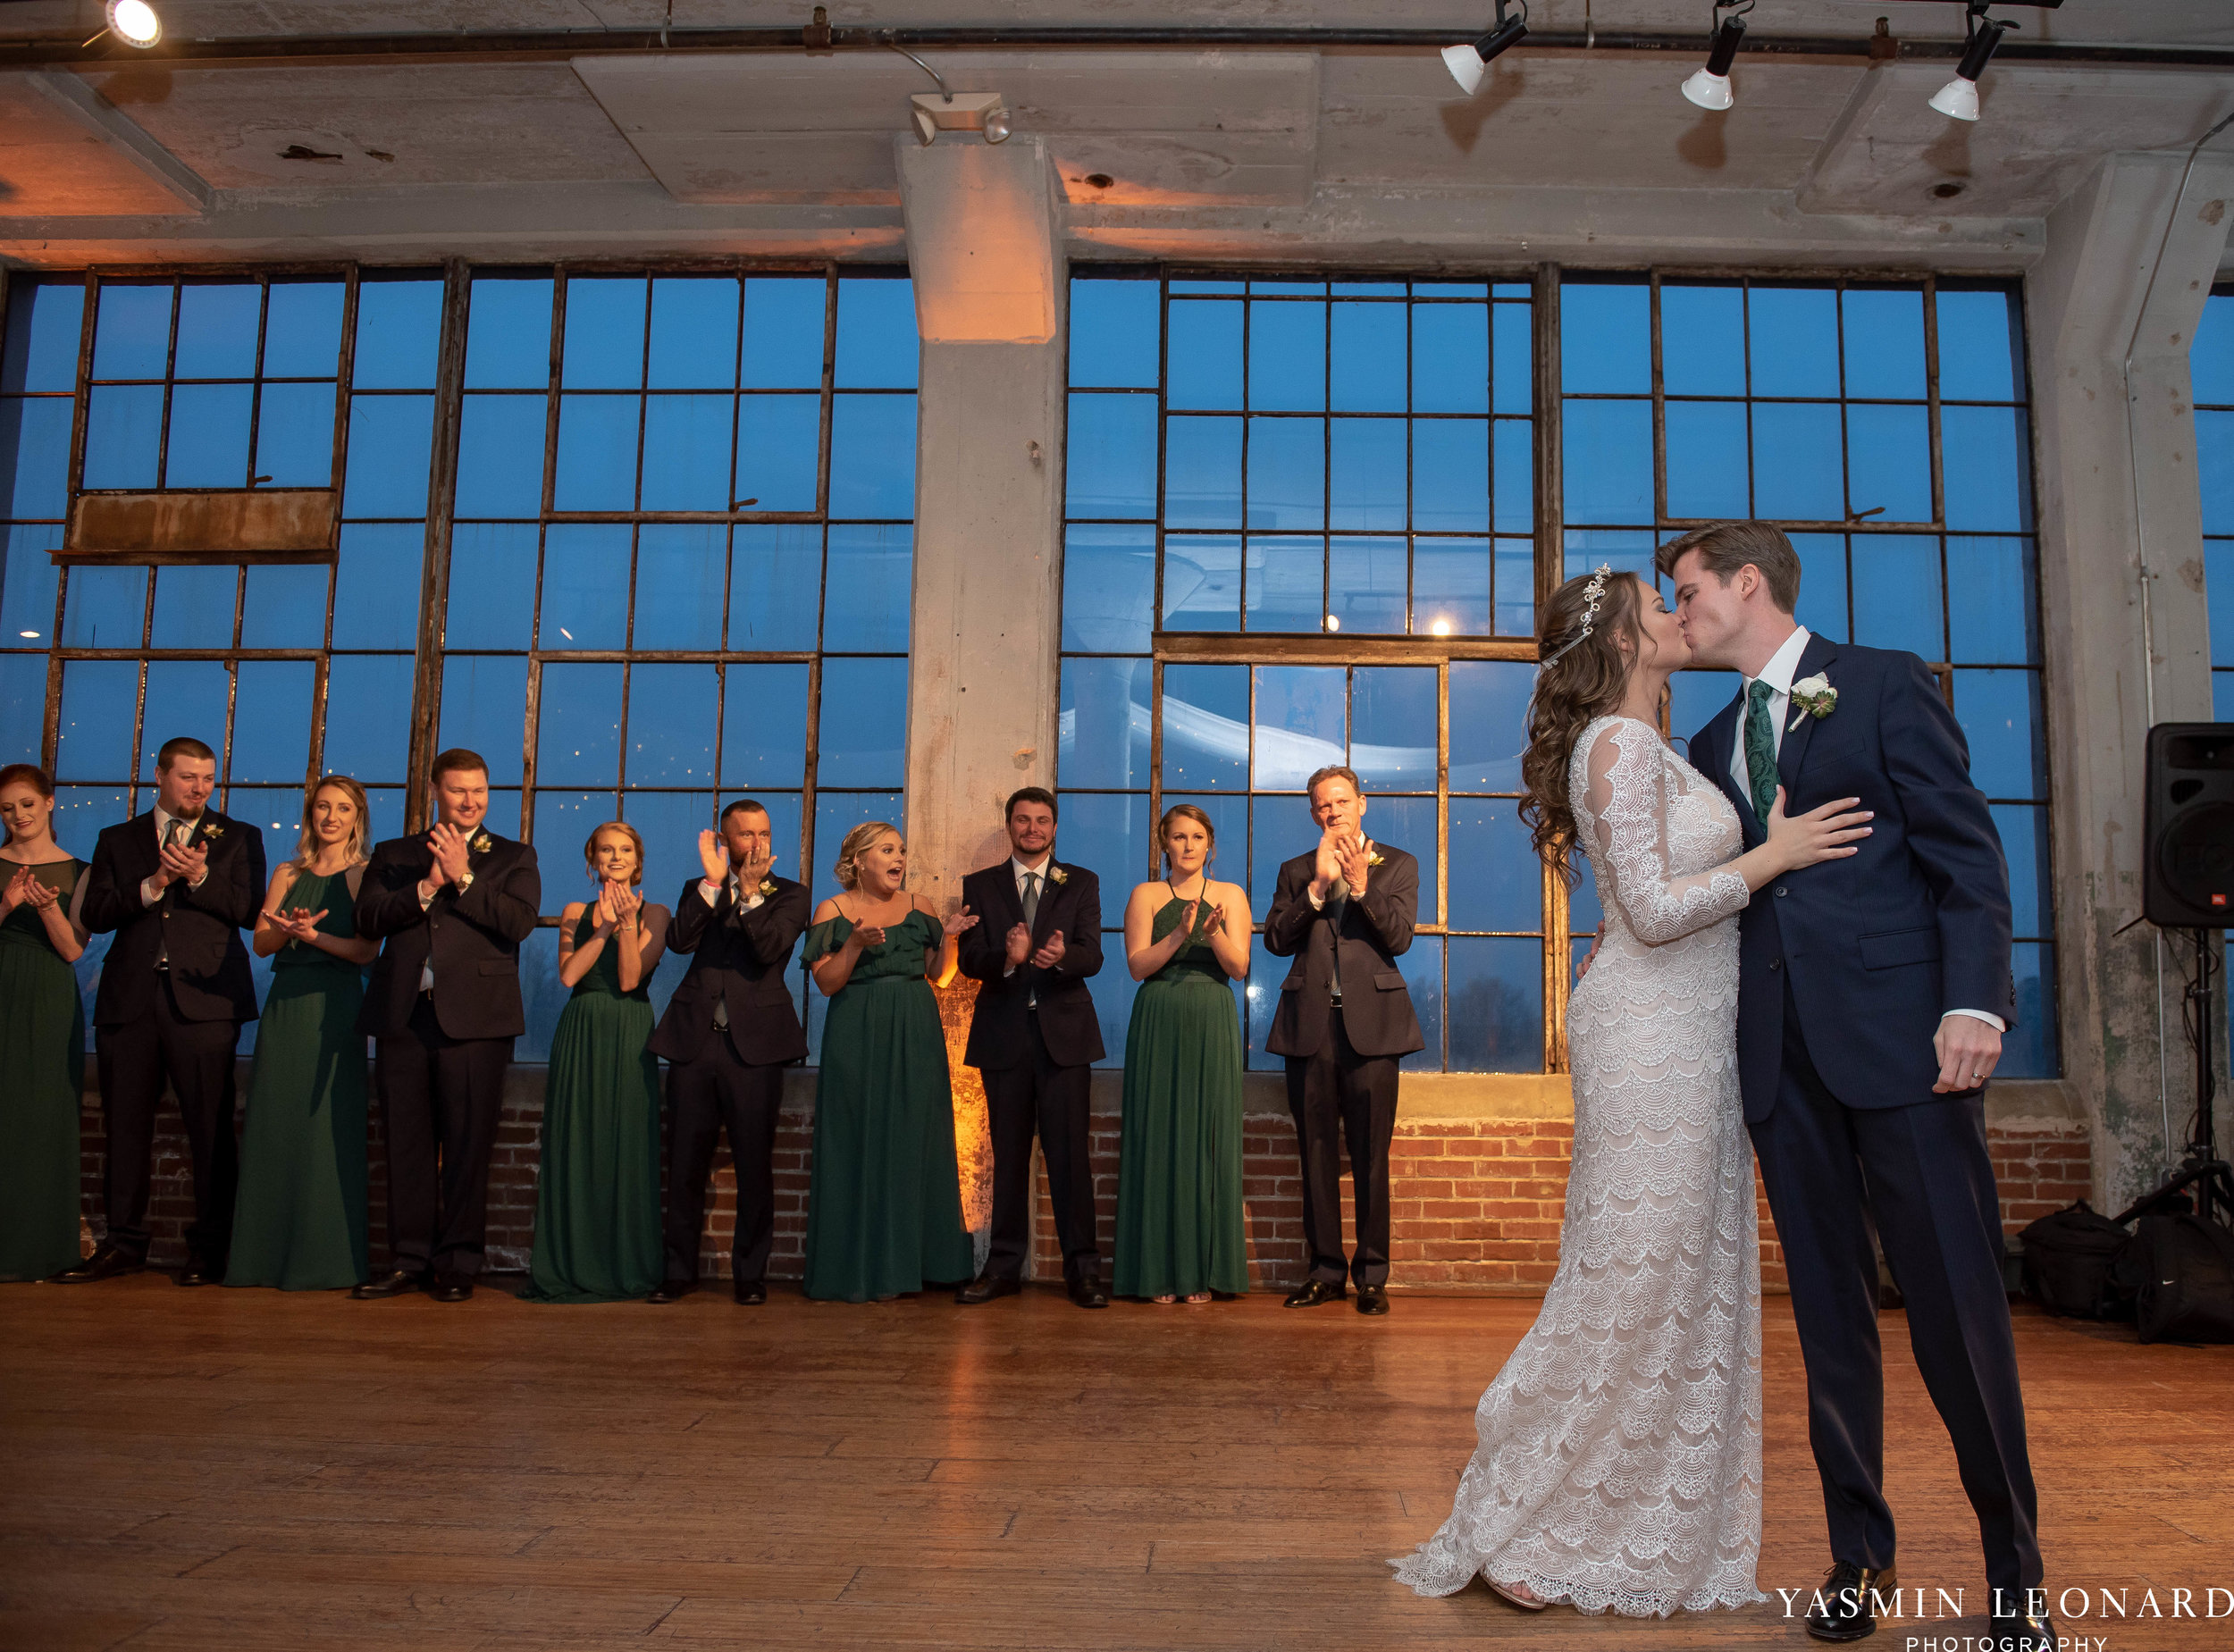 The Lofts at Union Square - Unions - High Point Weddings - NC Weddings - NC Wedding Photographer - Yasmin Leonard Photography - Just Priceless - Green Pink and Gold Wedding - Elegant Wedding-42.jpg